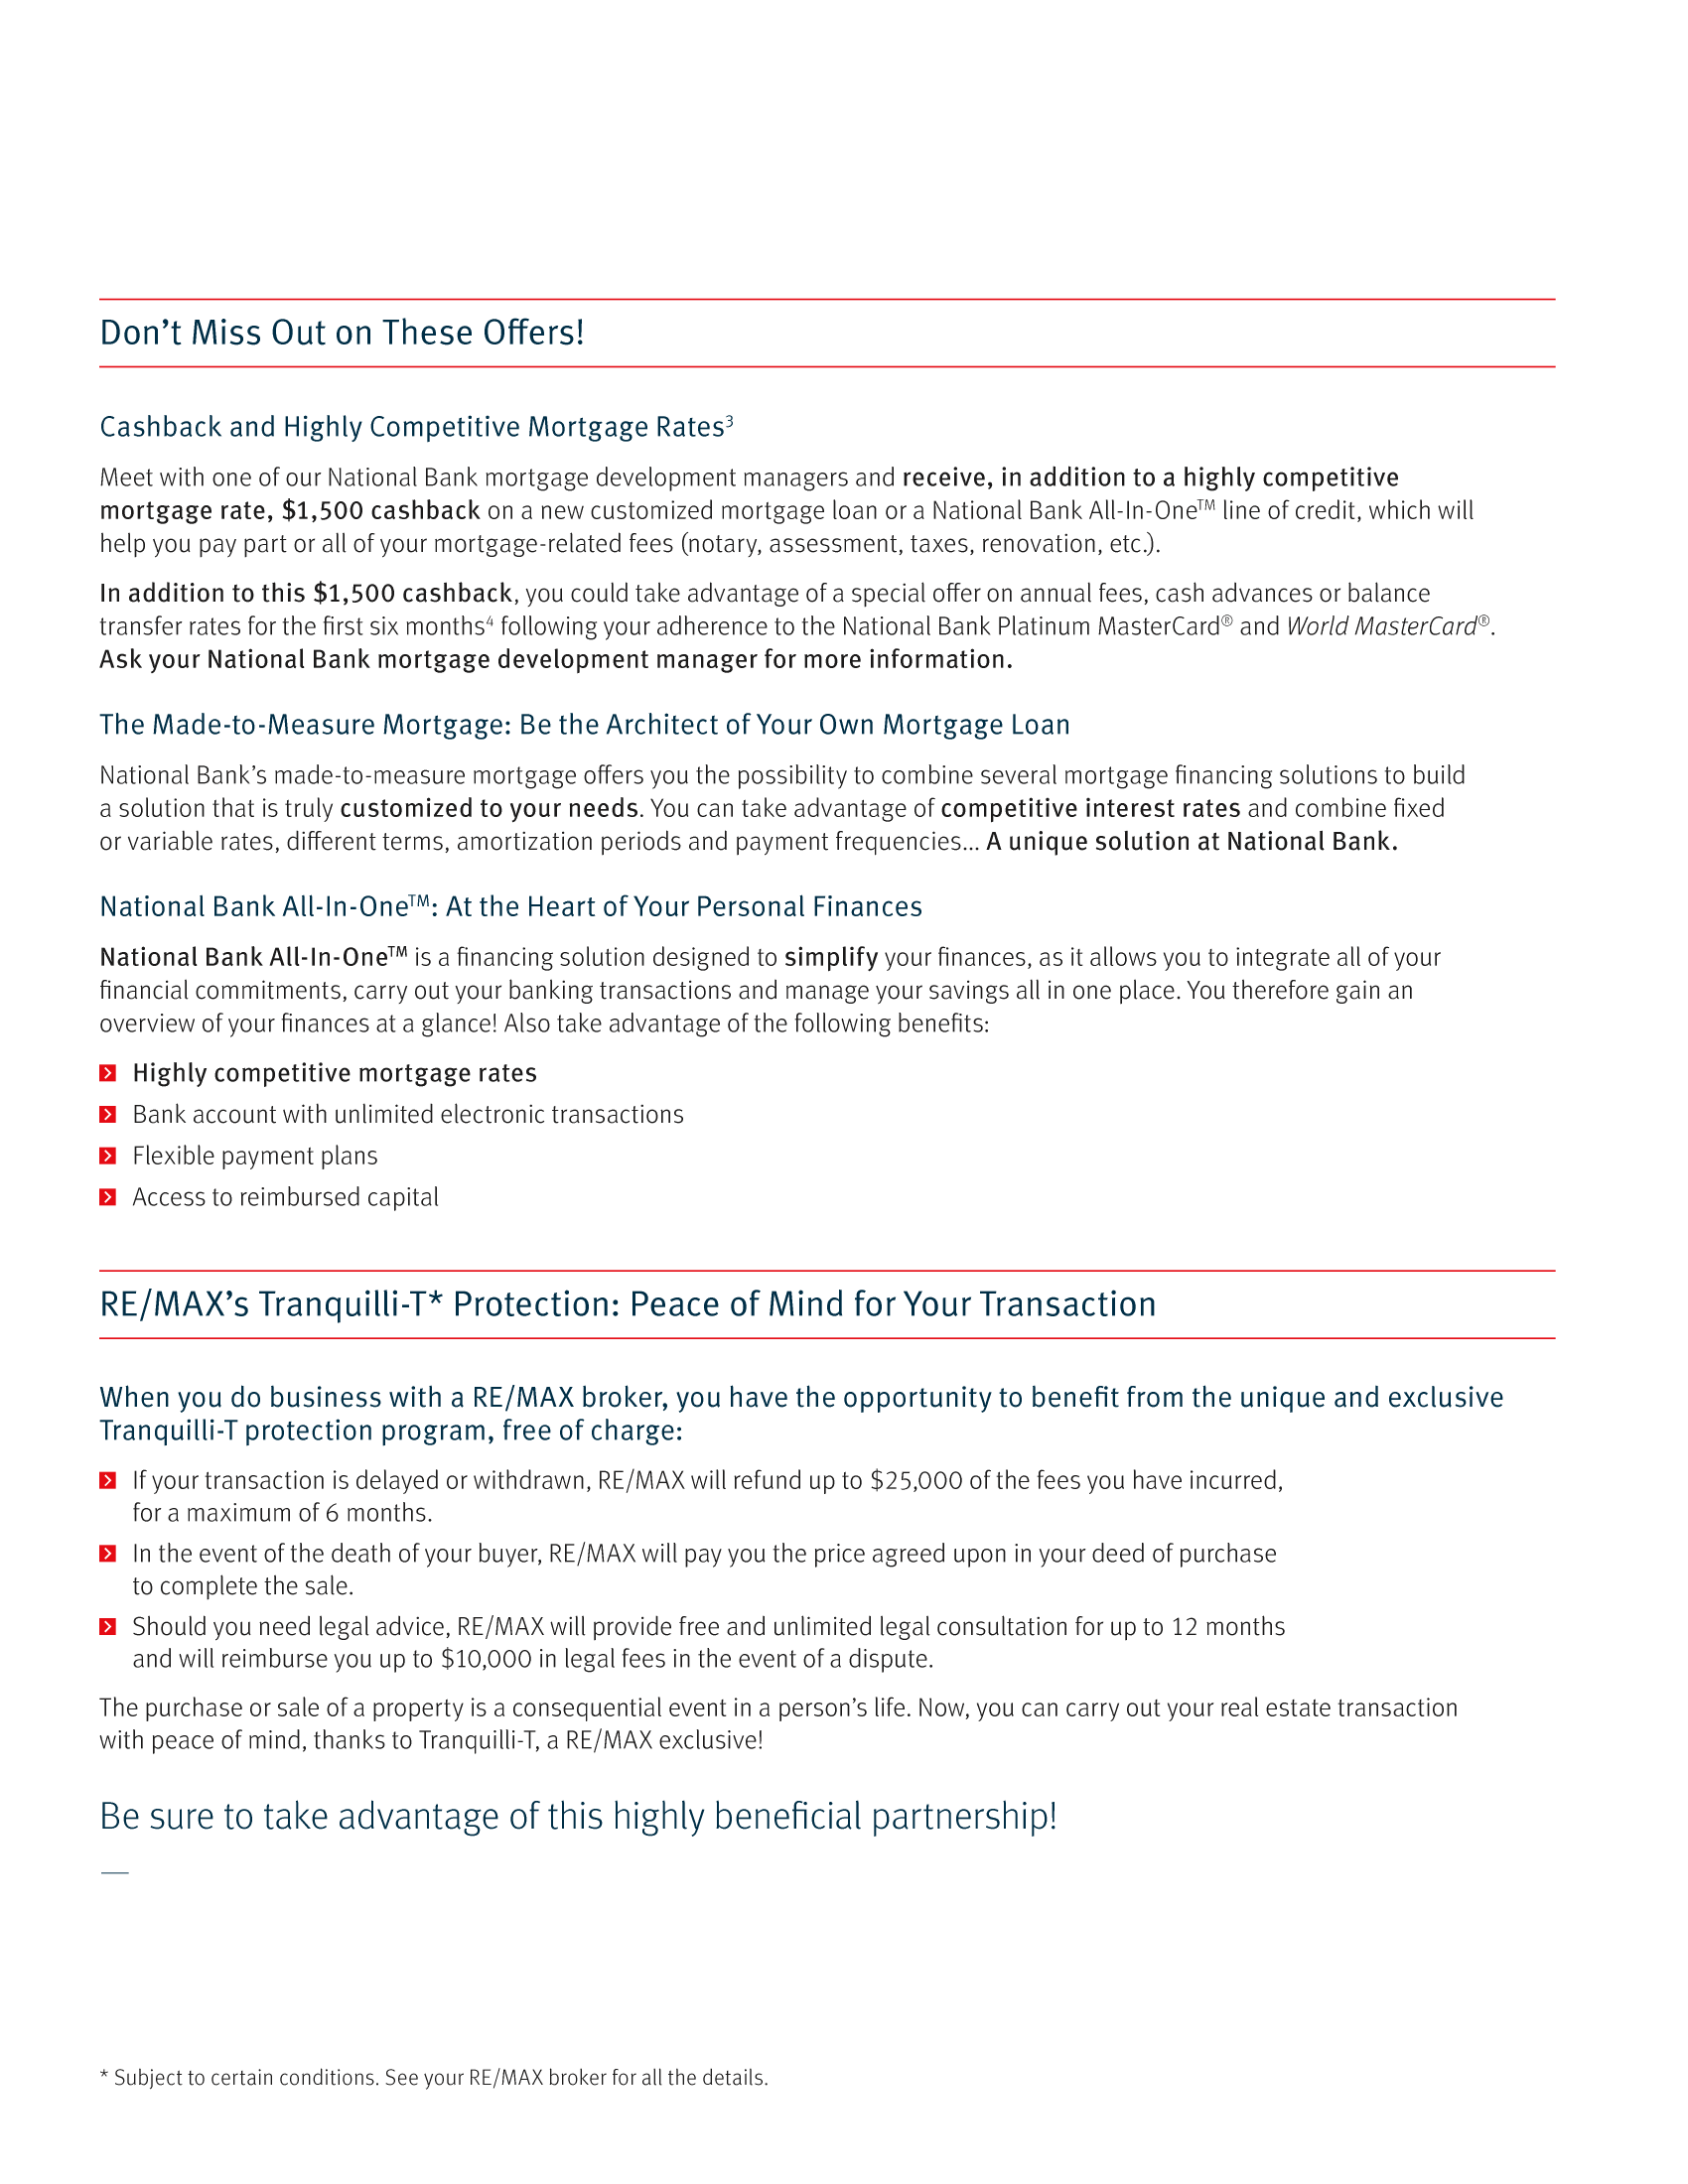 """3   Leaflet """"A Partnership with a Wealth of Advantages"""" - RE/MAX Traquili-t"""